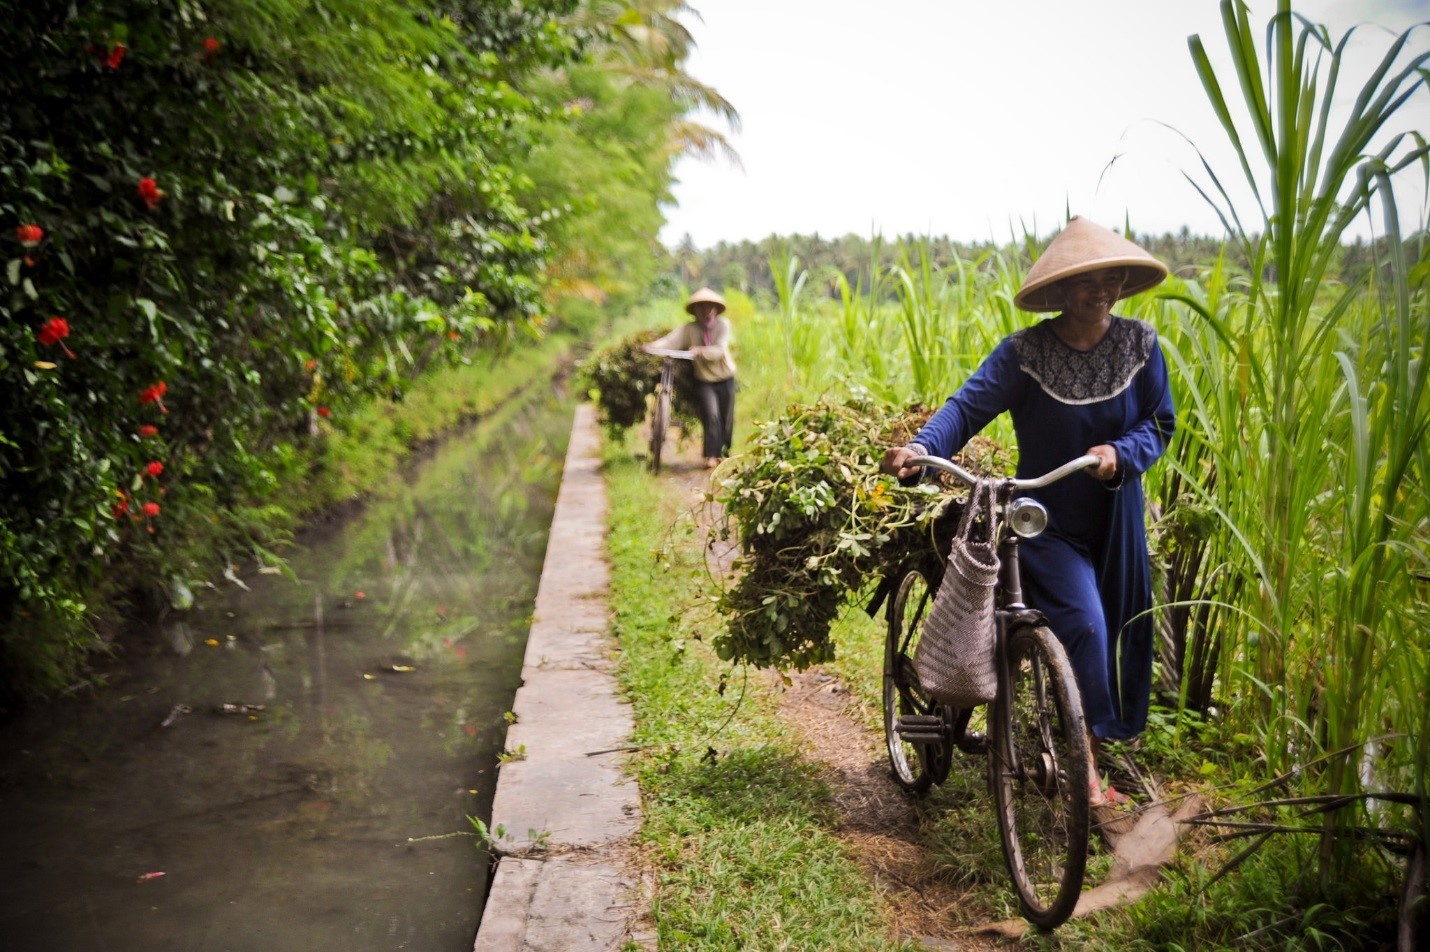 <p>One way to address the food gap is to shift diets towards less resource-intensive foods. Flickr/Asian Development Bank</p>